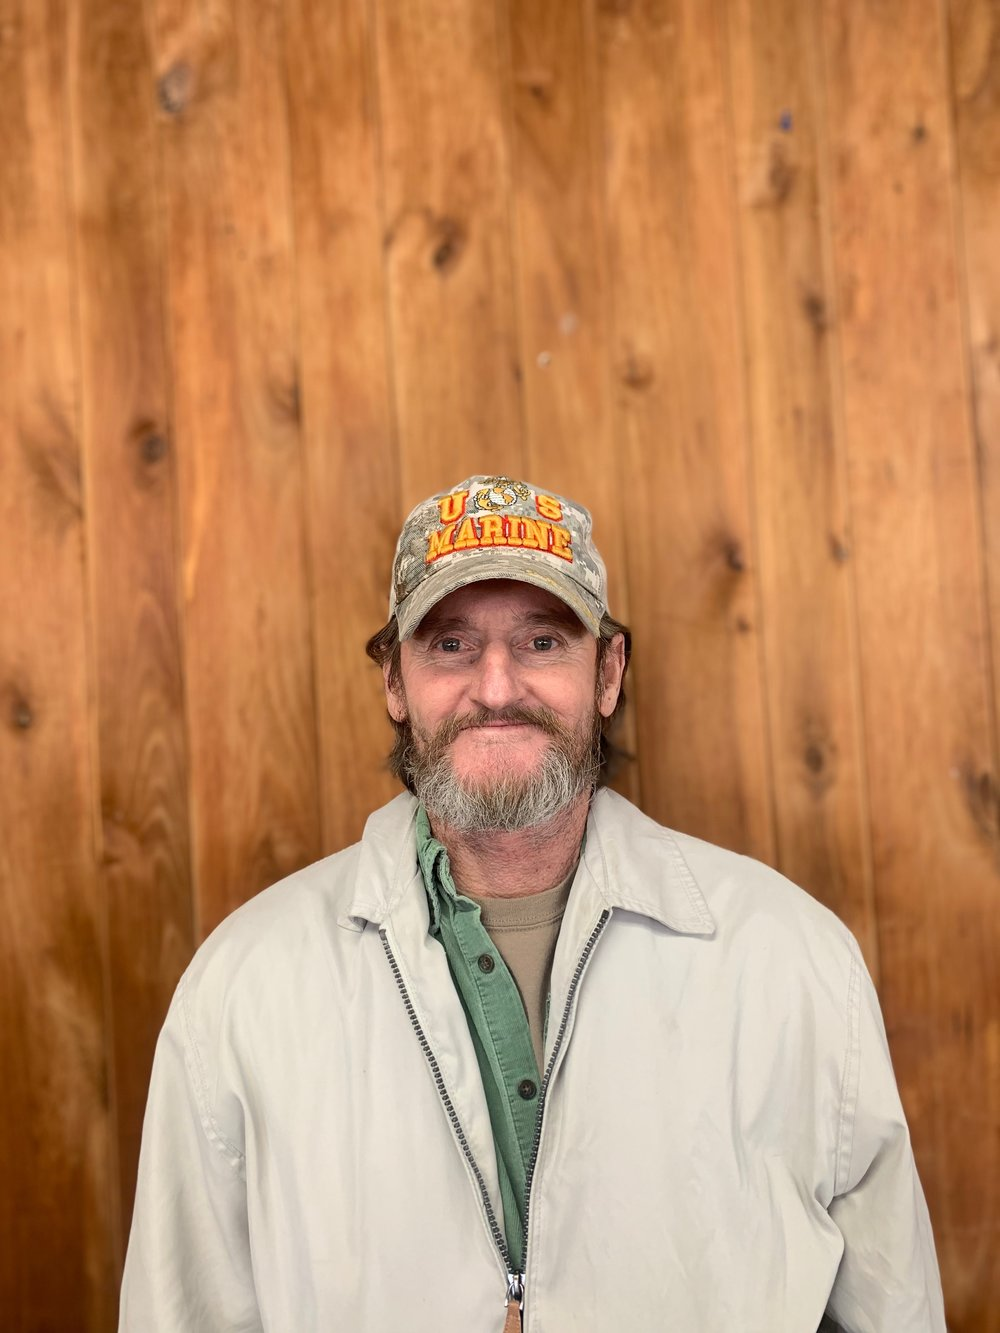 Facilities Manager: Kevin Critchfield